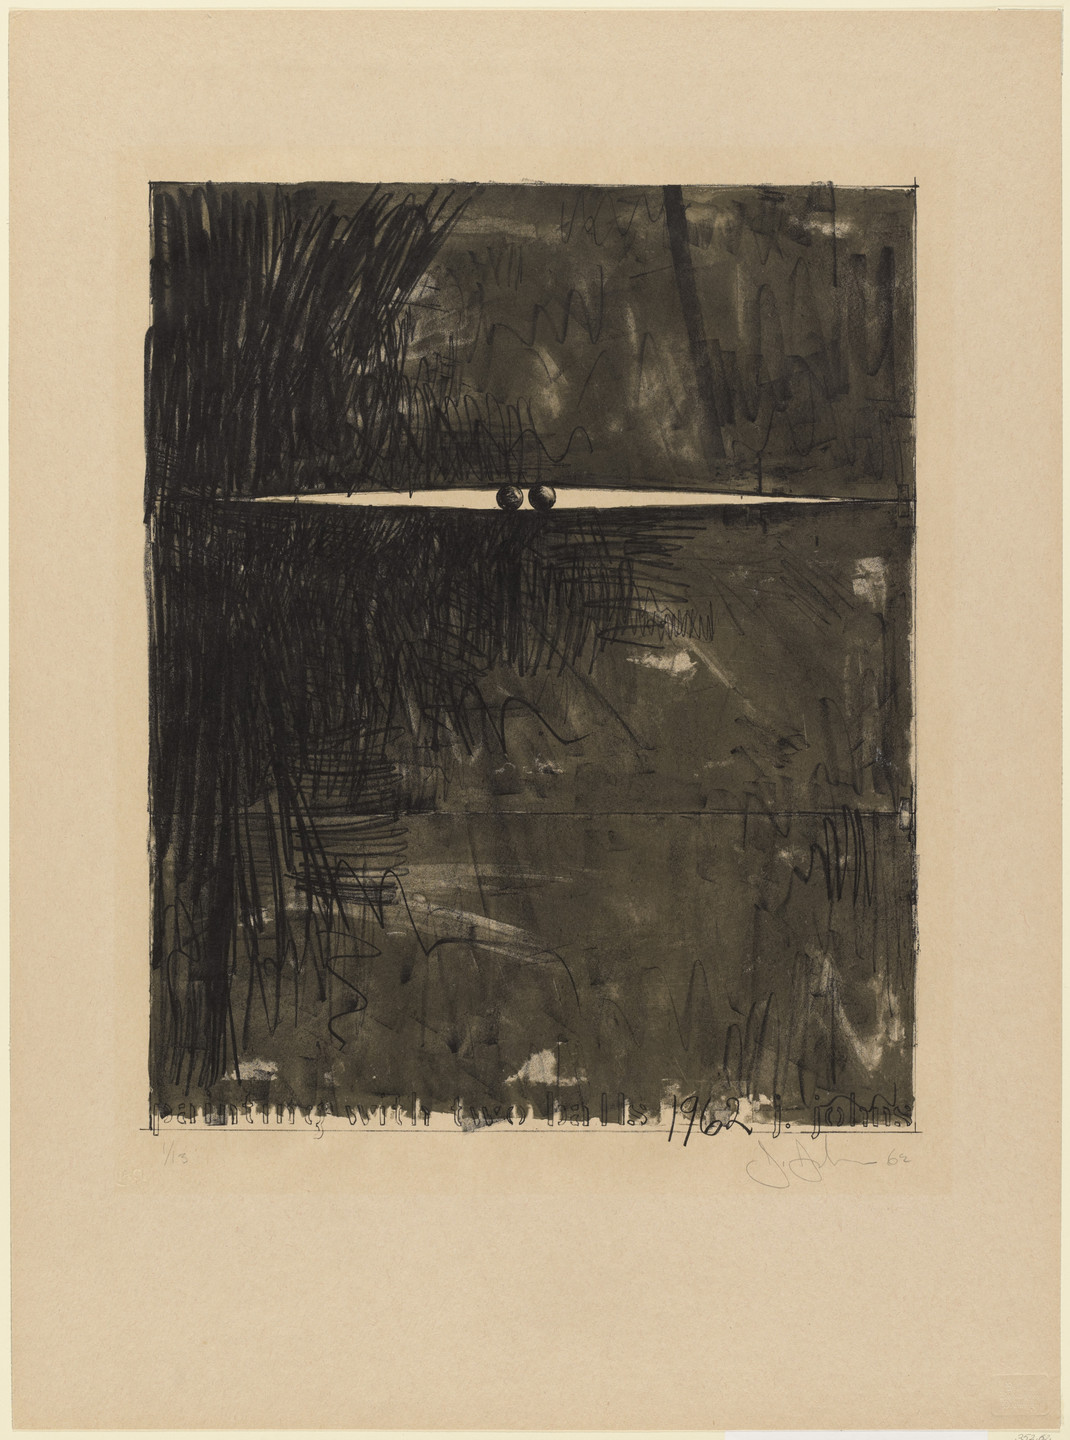 Jasper Johns. Painting with Two Balls II. 1962